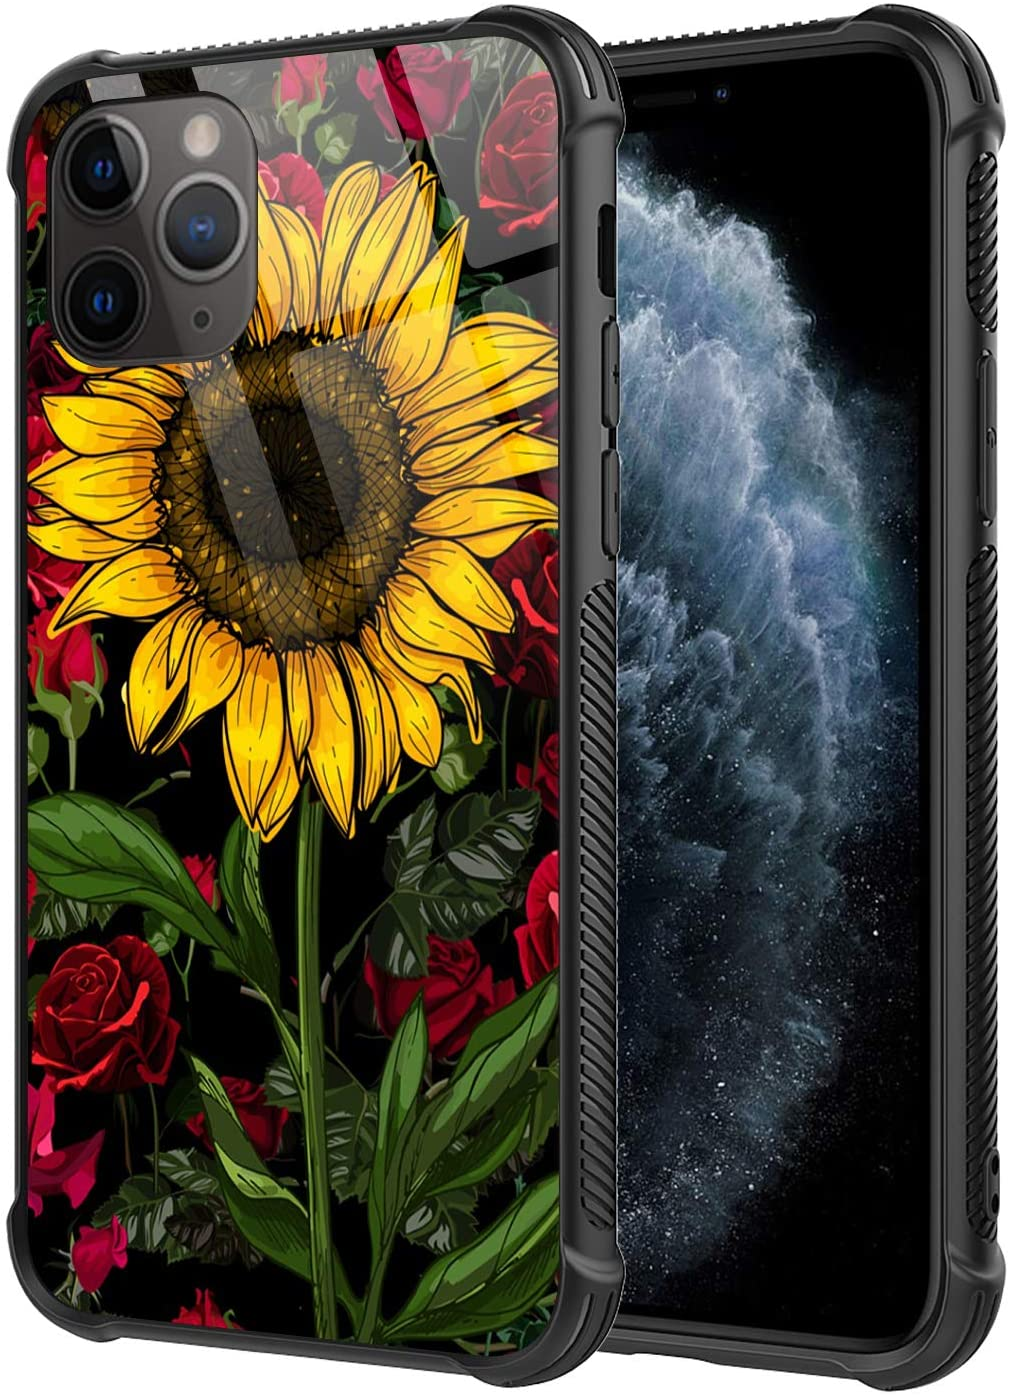 iPhone 11 Pro Max Case,Sunflower Rose Pattern Design 9H Tempered Glass Cover for Girls Women [Anti-Scratch] Soft TPU Bumper Frame Support Cover Case for iPhone 11 Pro Max(6.5 inch)